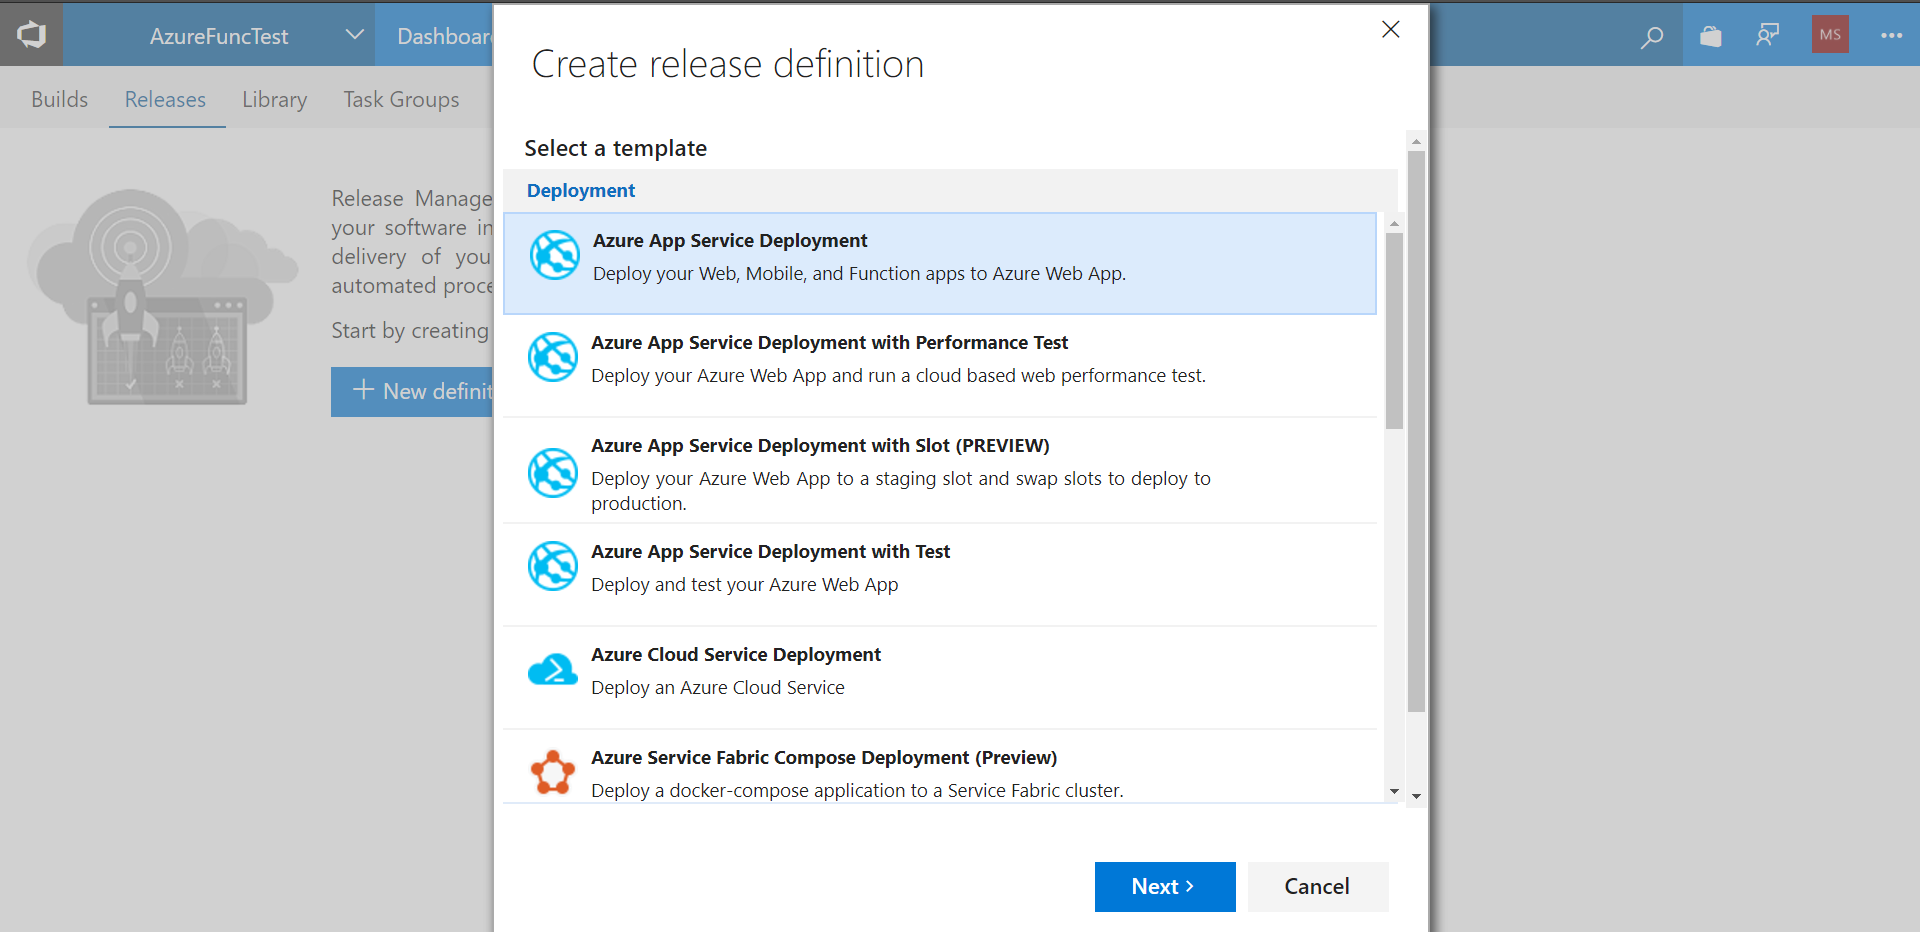 Continuous Delivery - Learning Azure Functions